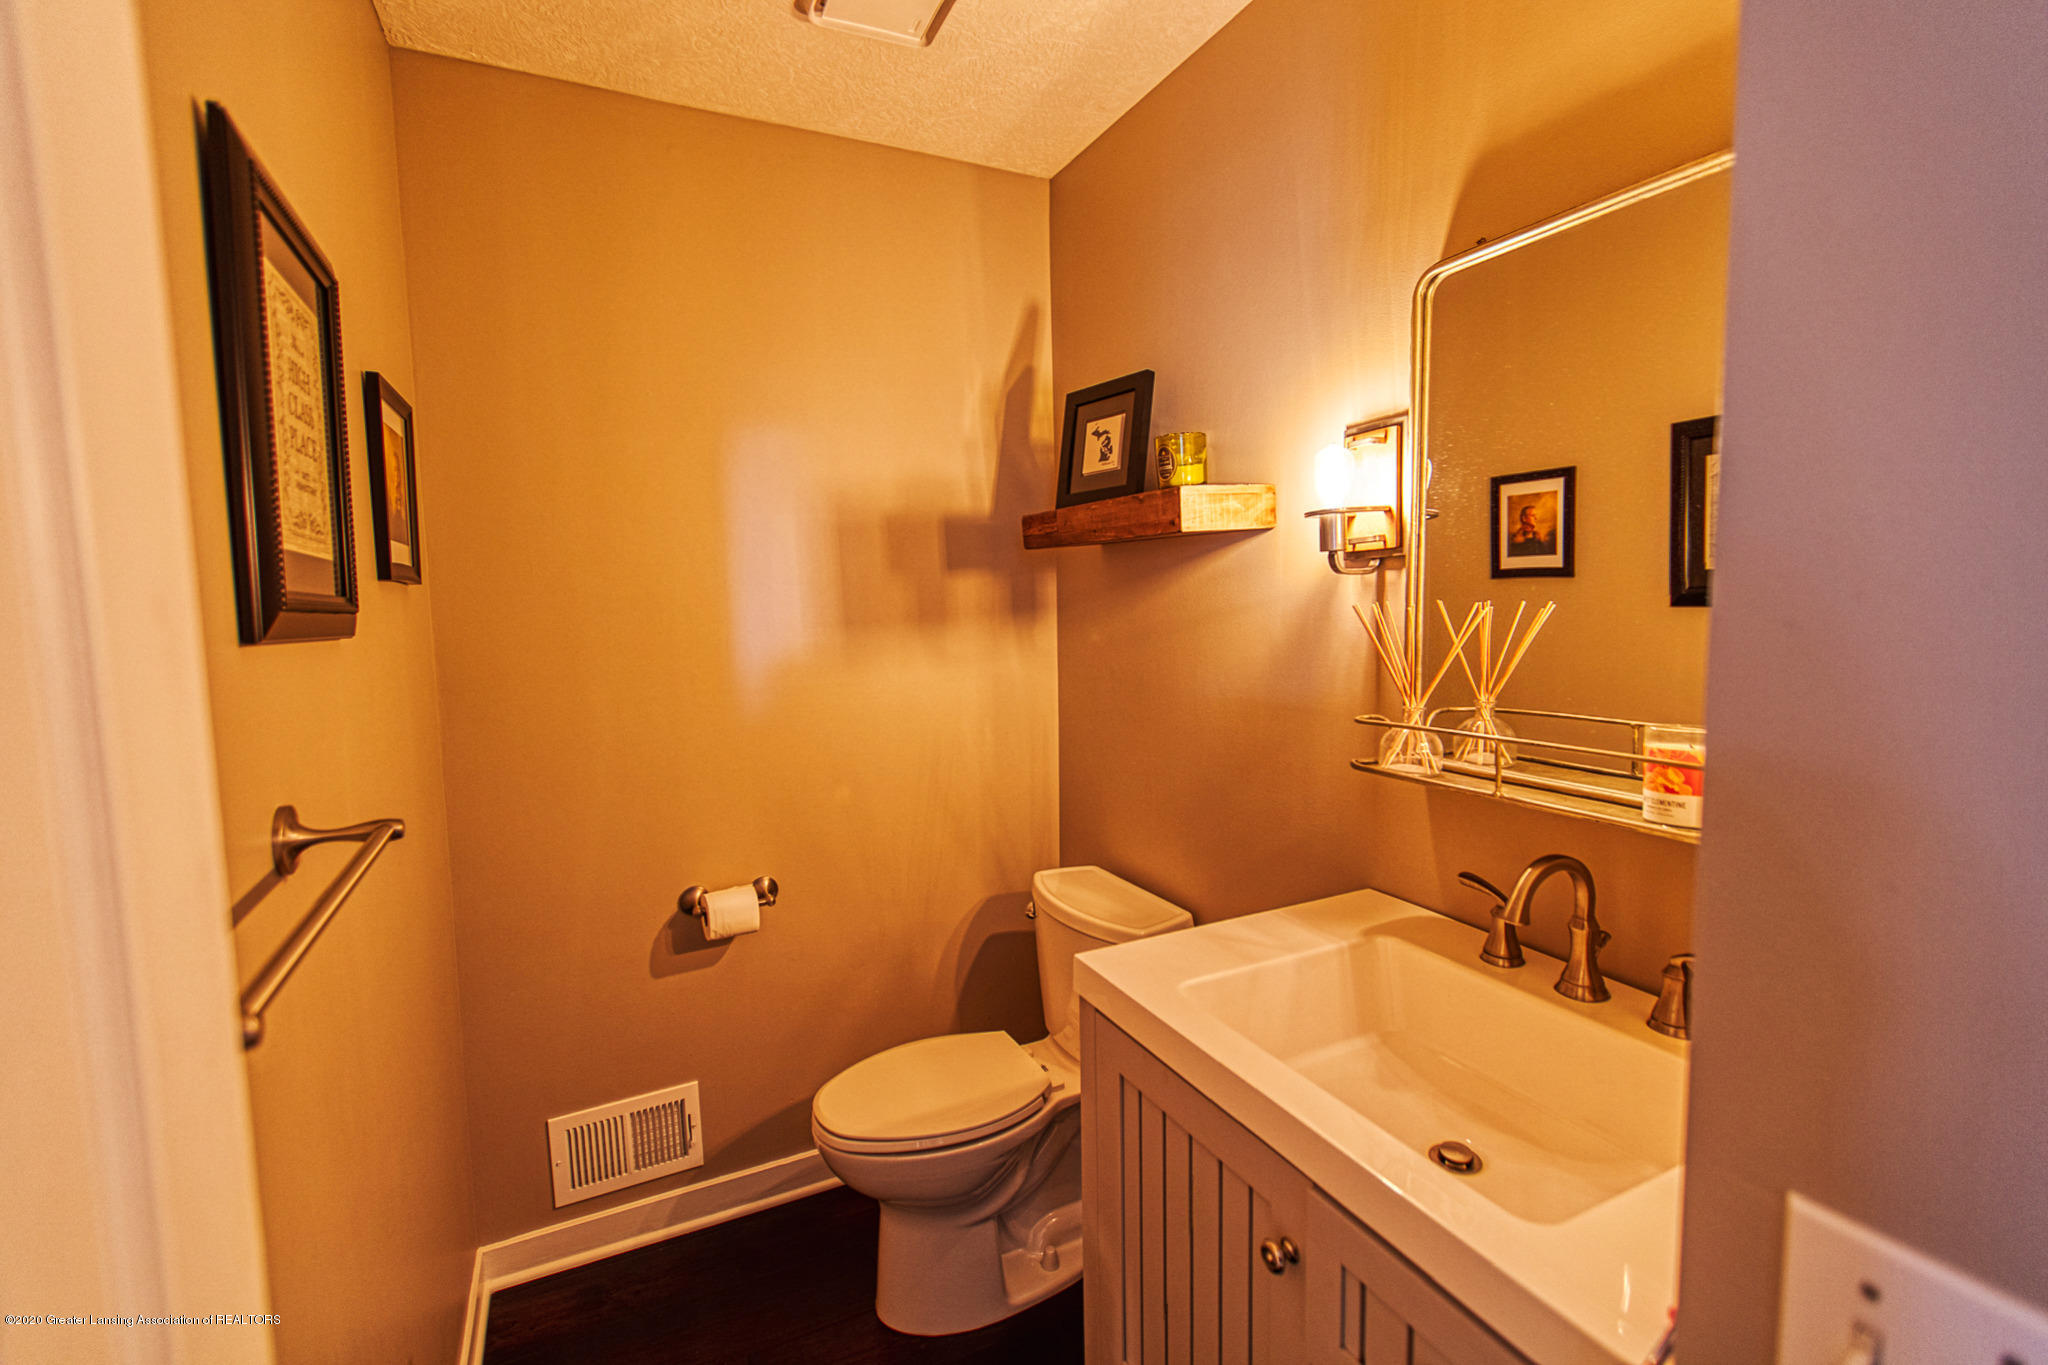 3668 Fairhills Dr - Bathroom - 50